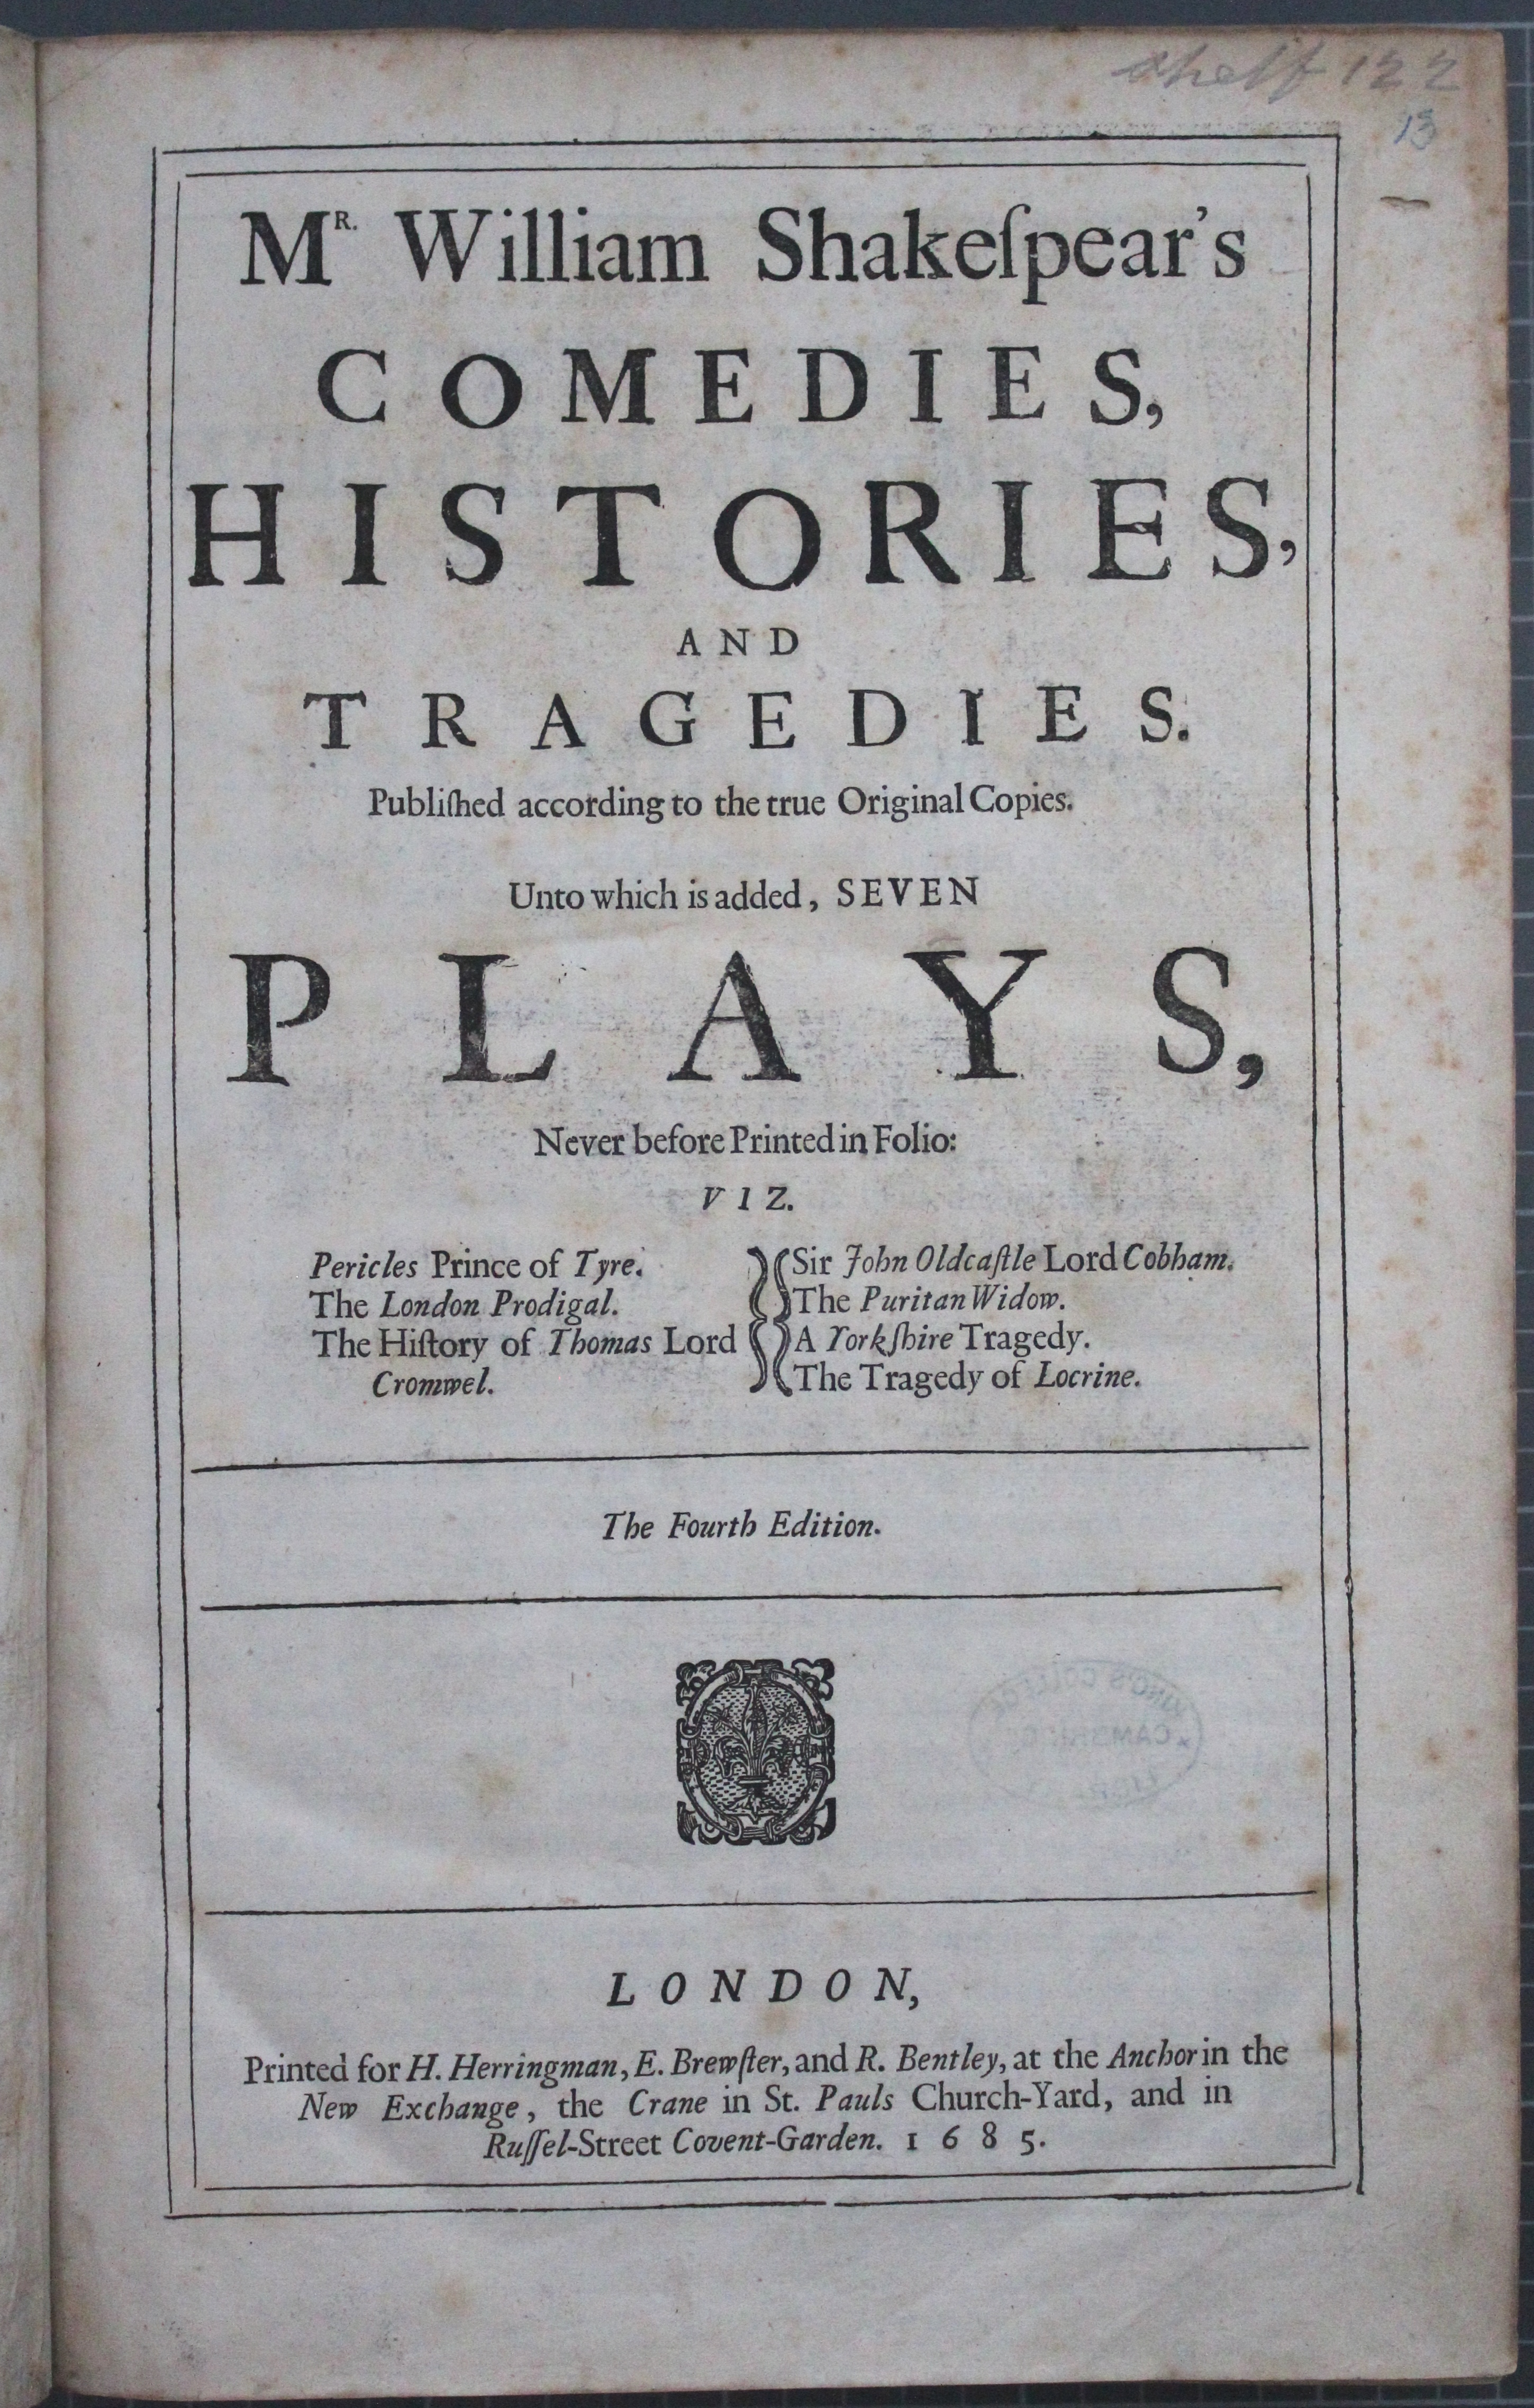 Thackeray.13_title page